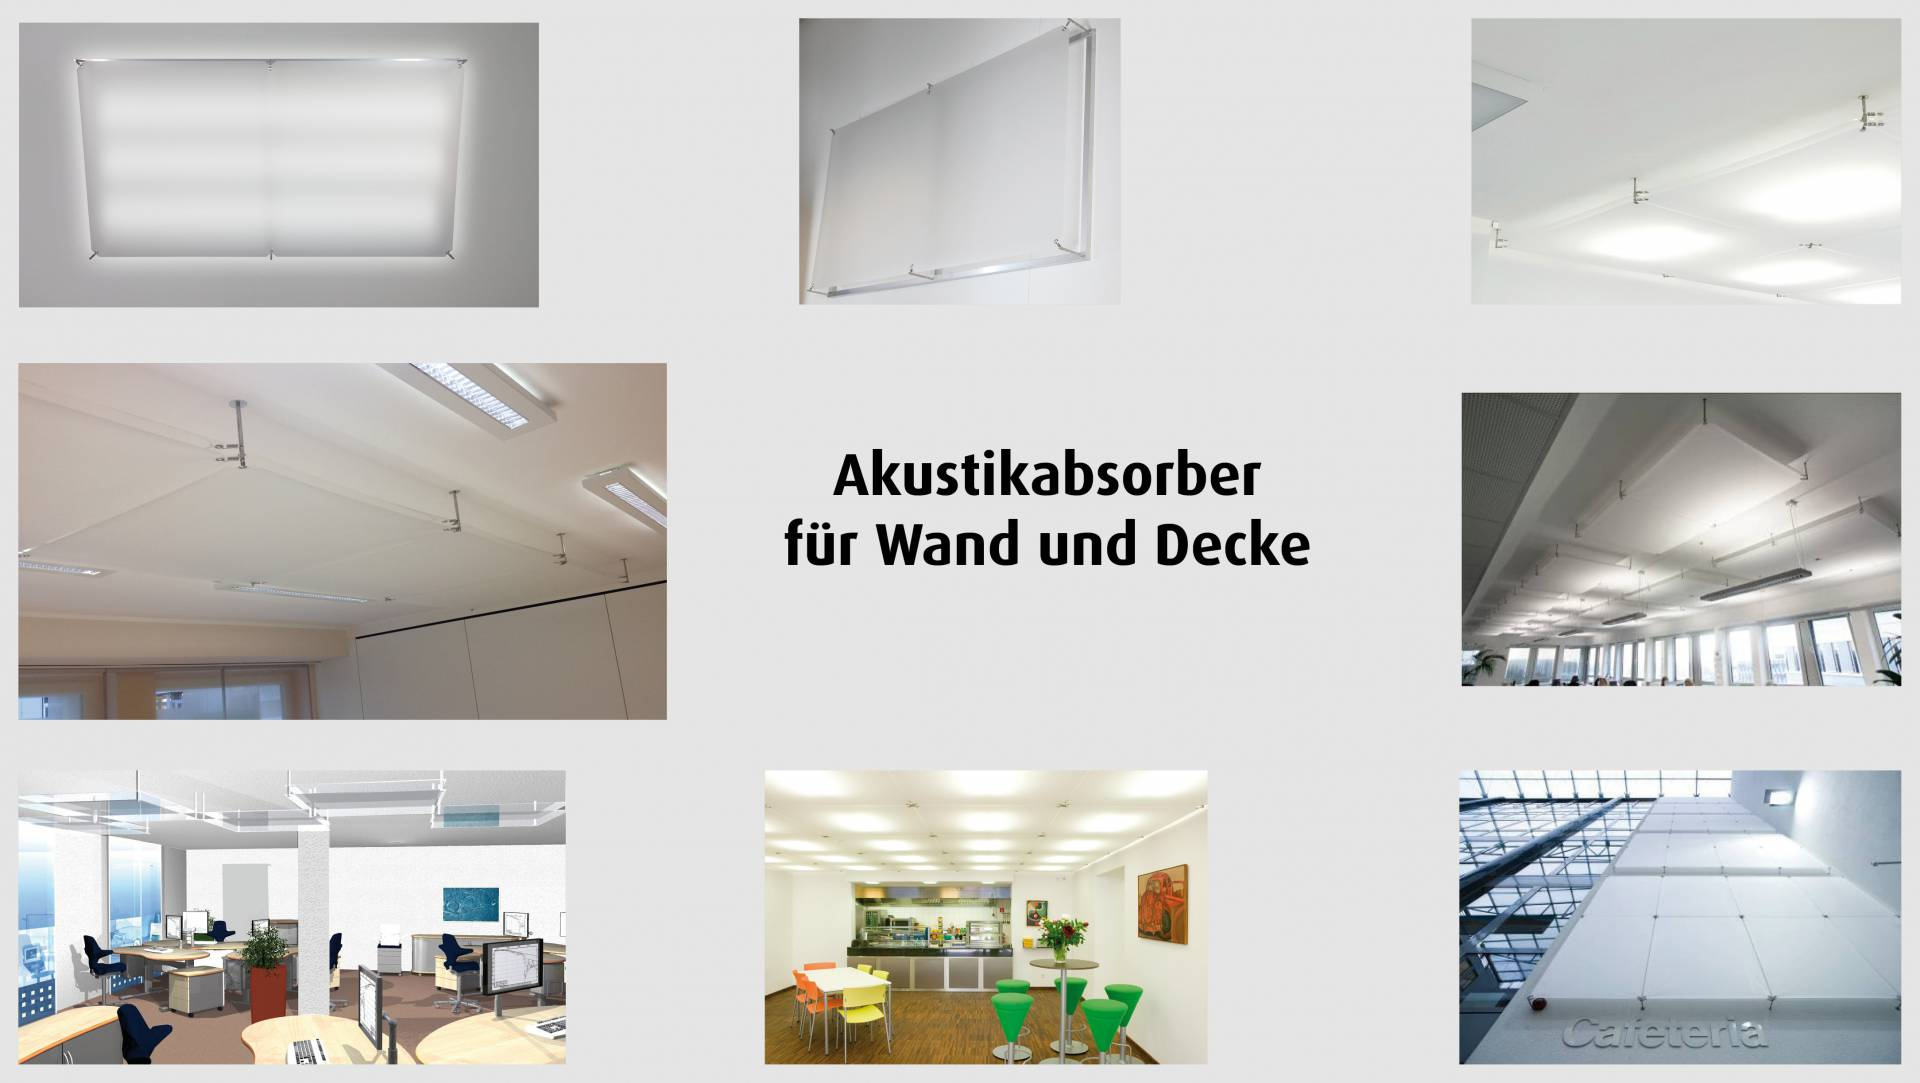 vitAcoustic - Acoustic absorbers for wall and ceiling - Vital-Office